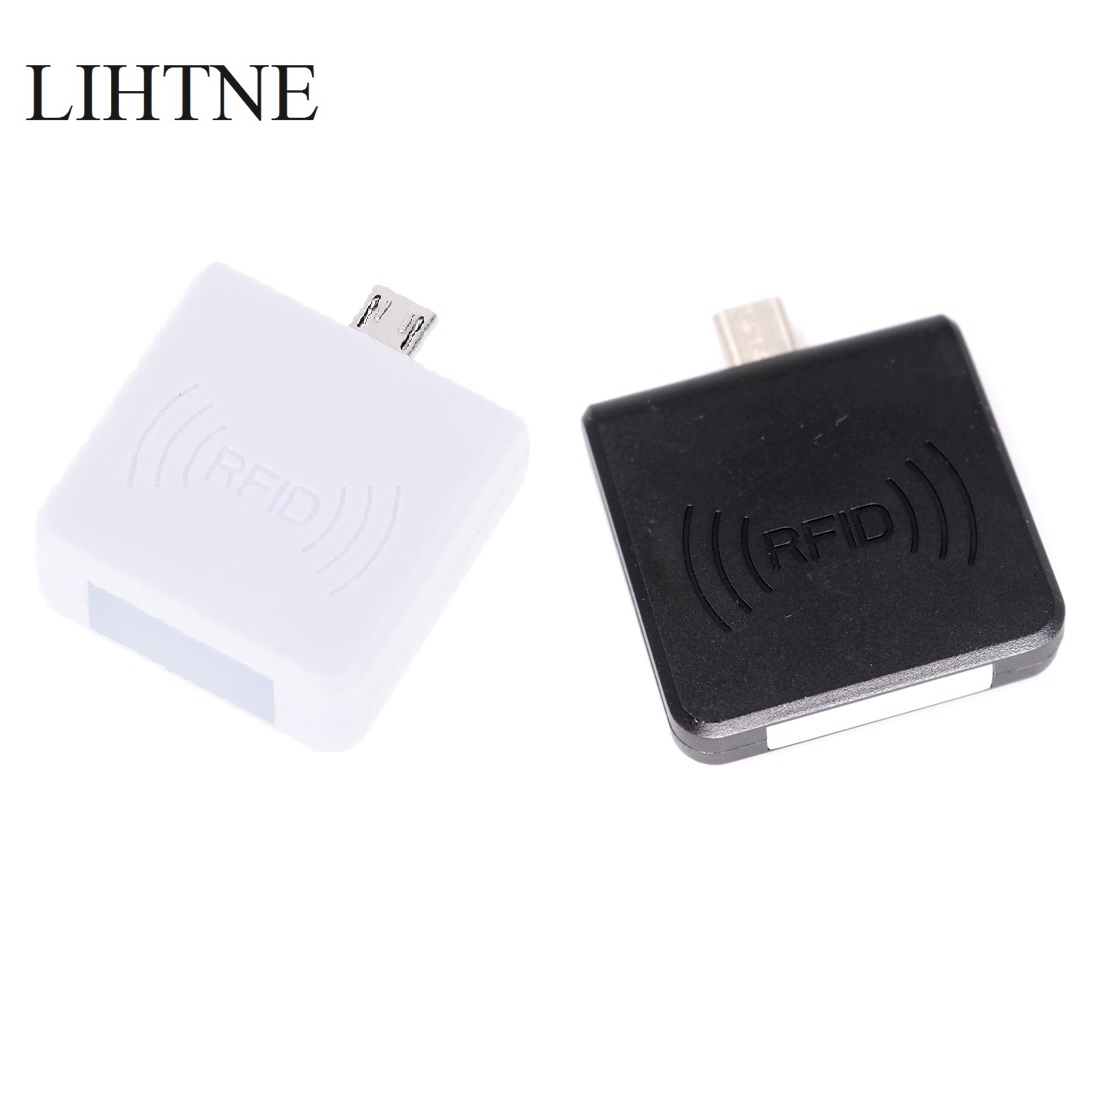 RFID 13.56Mhz IC MF1 S50 S70 NFC Reader Portable Mirco USB Card Reader for Android Phone